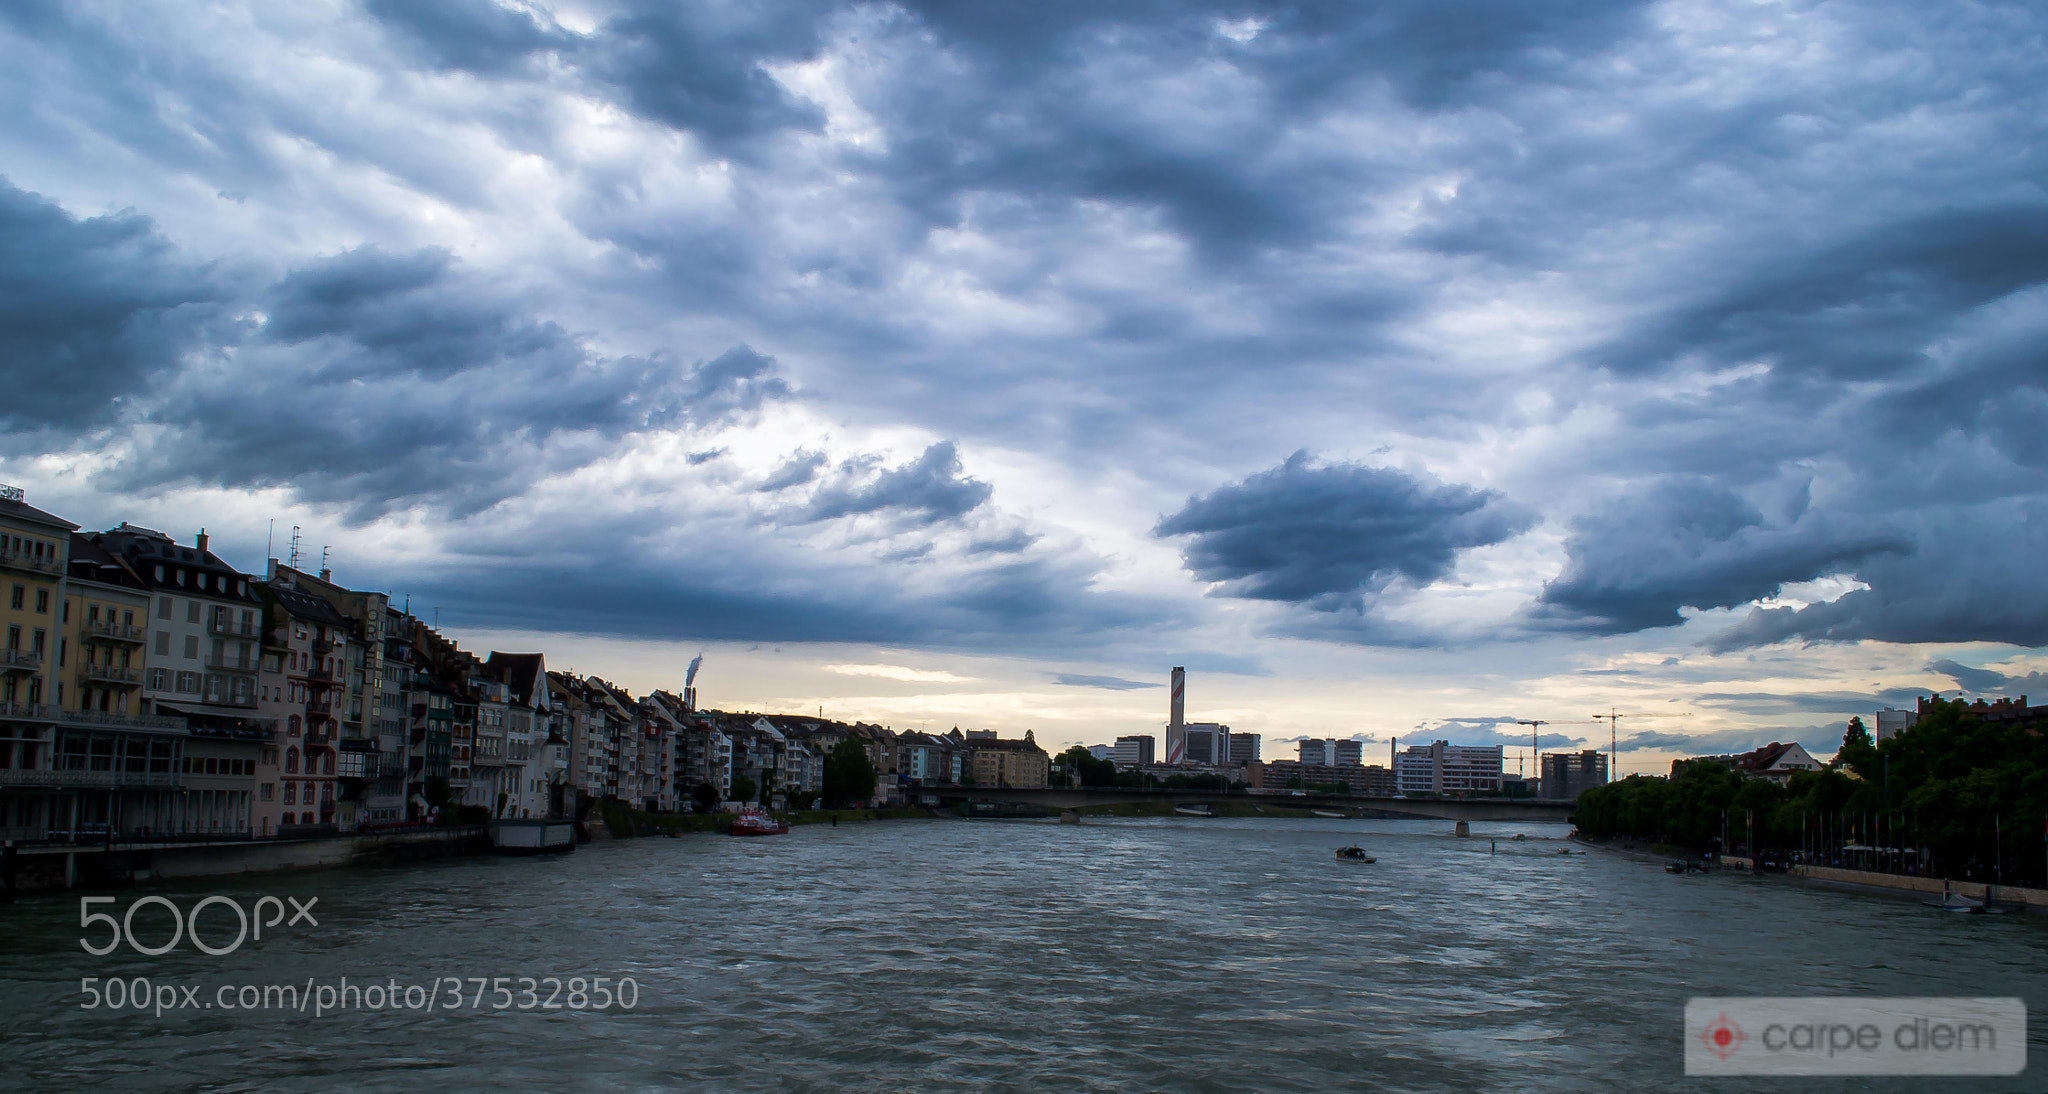 Photograph The Rhein by Saurabh Ganguli on 500px